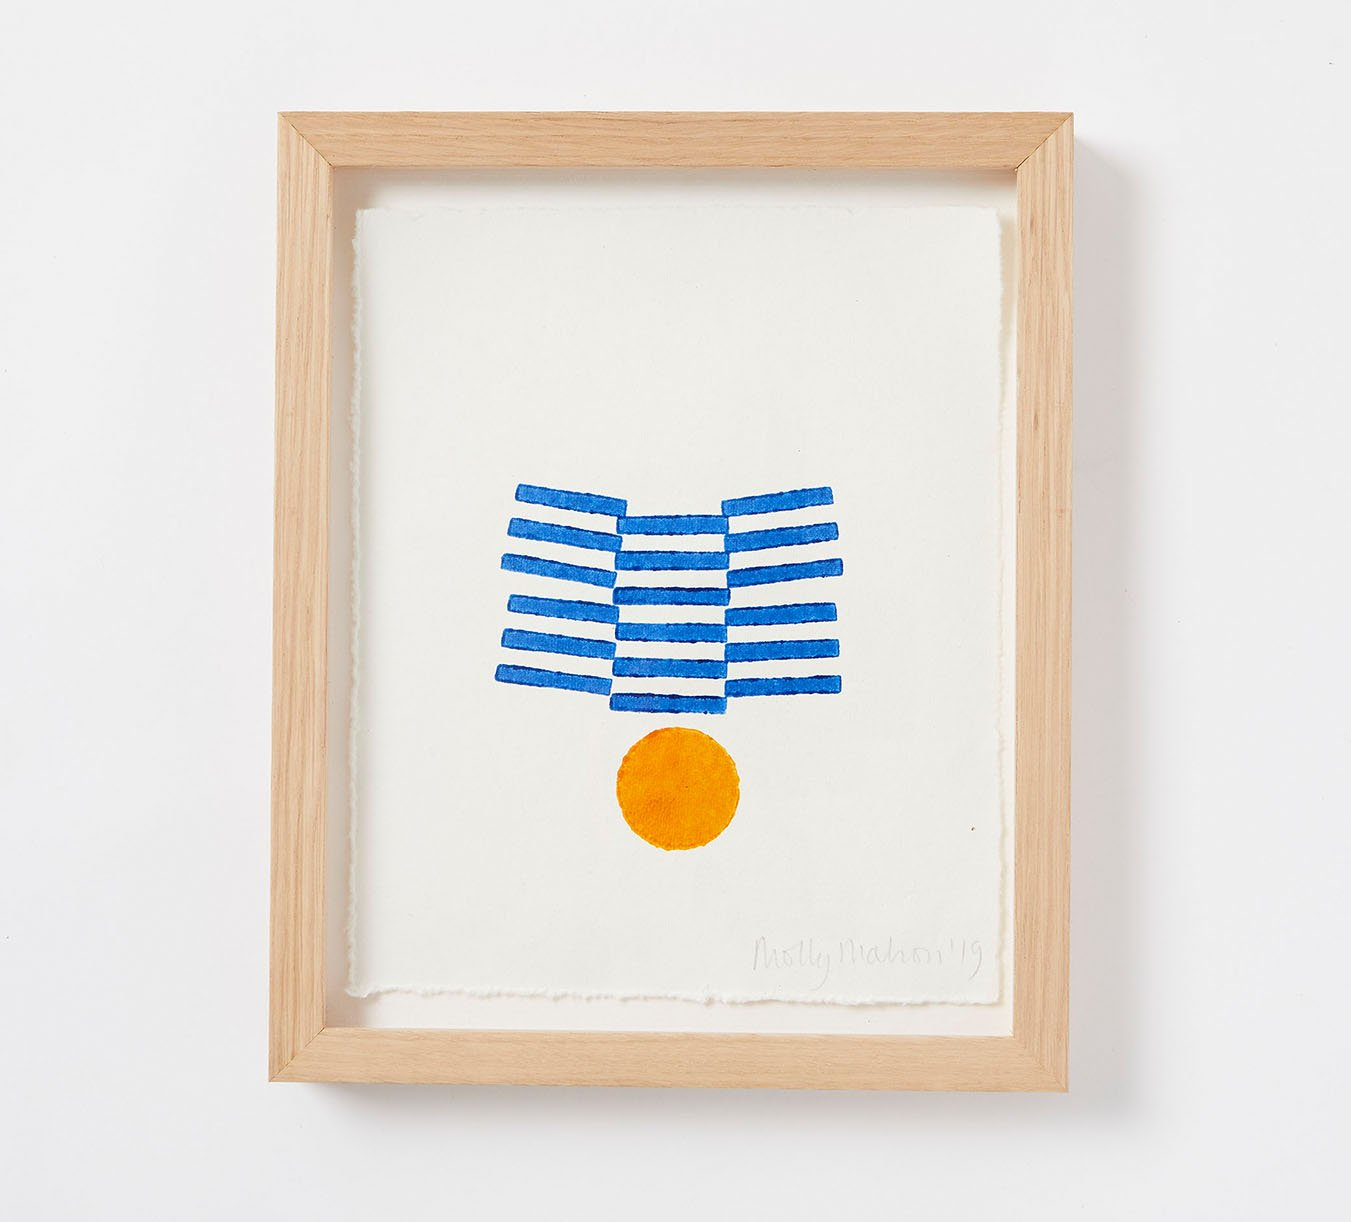 Framed - Cotton Paper Print - Fran - Blue